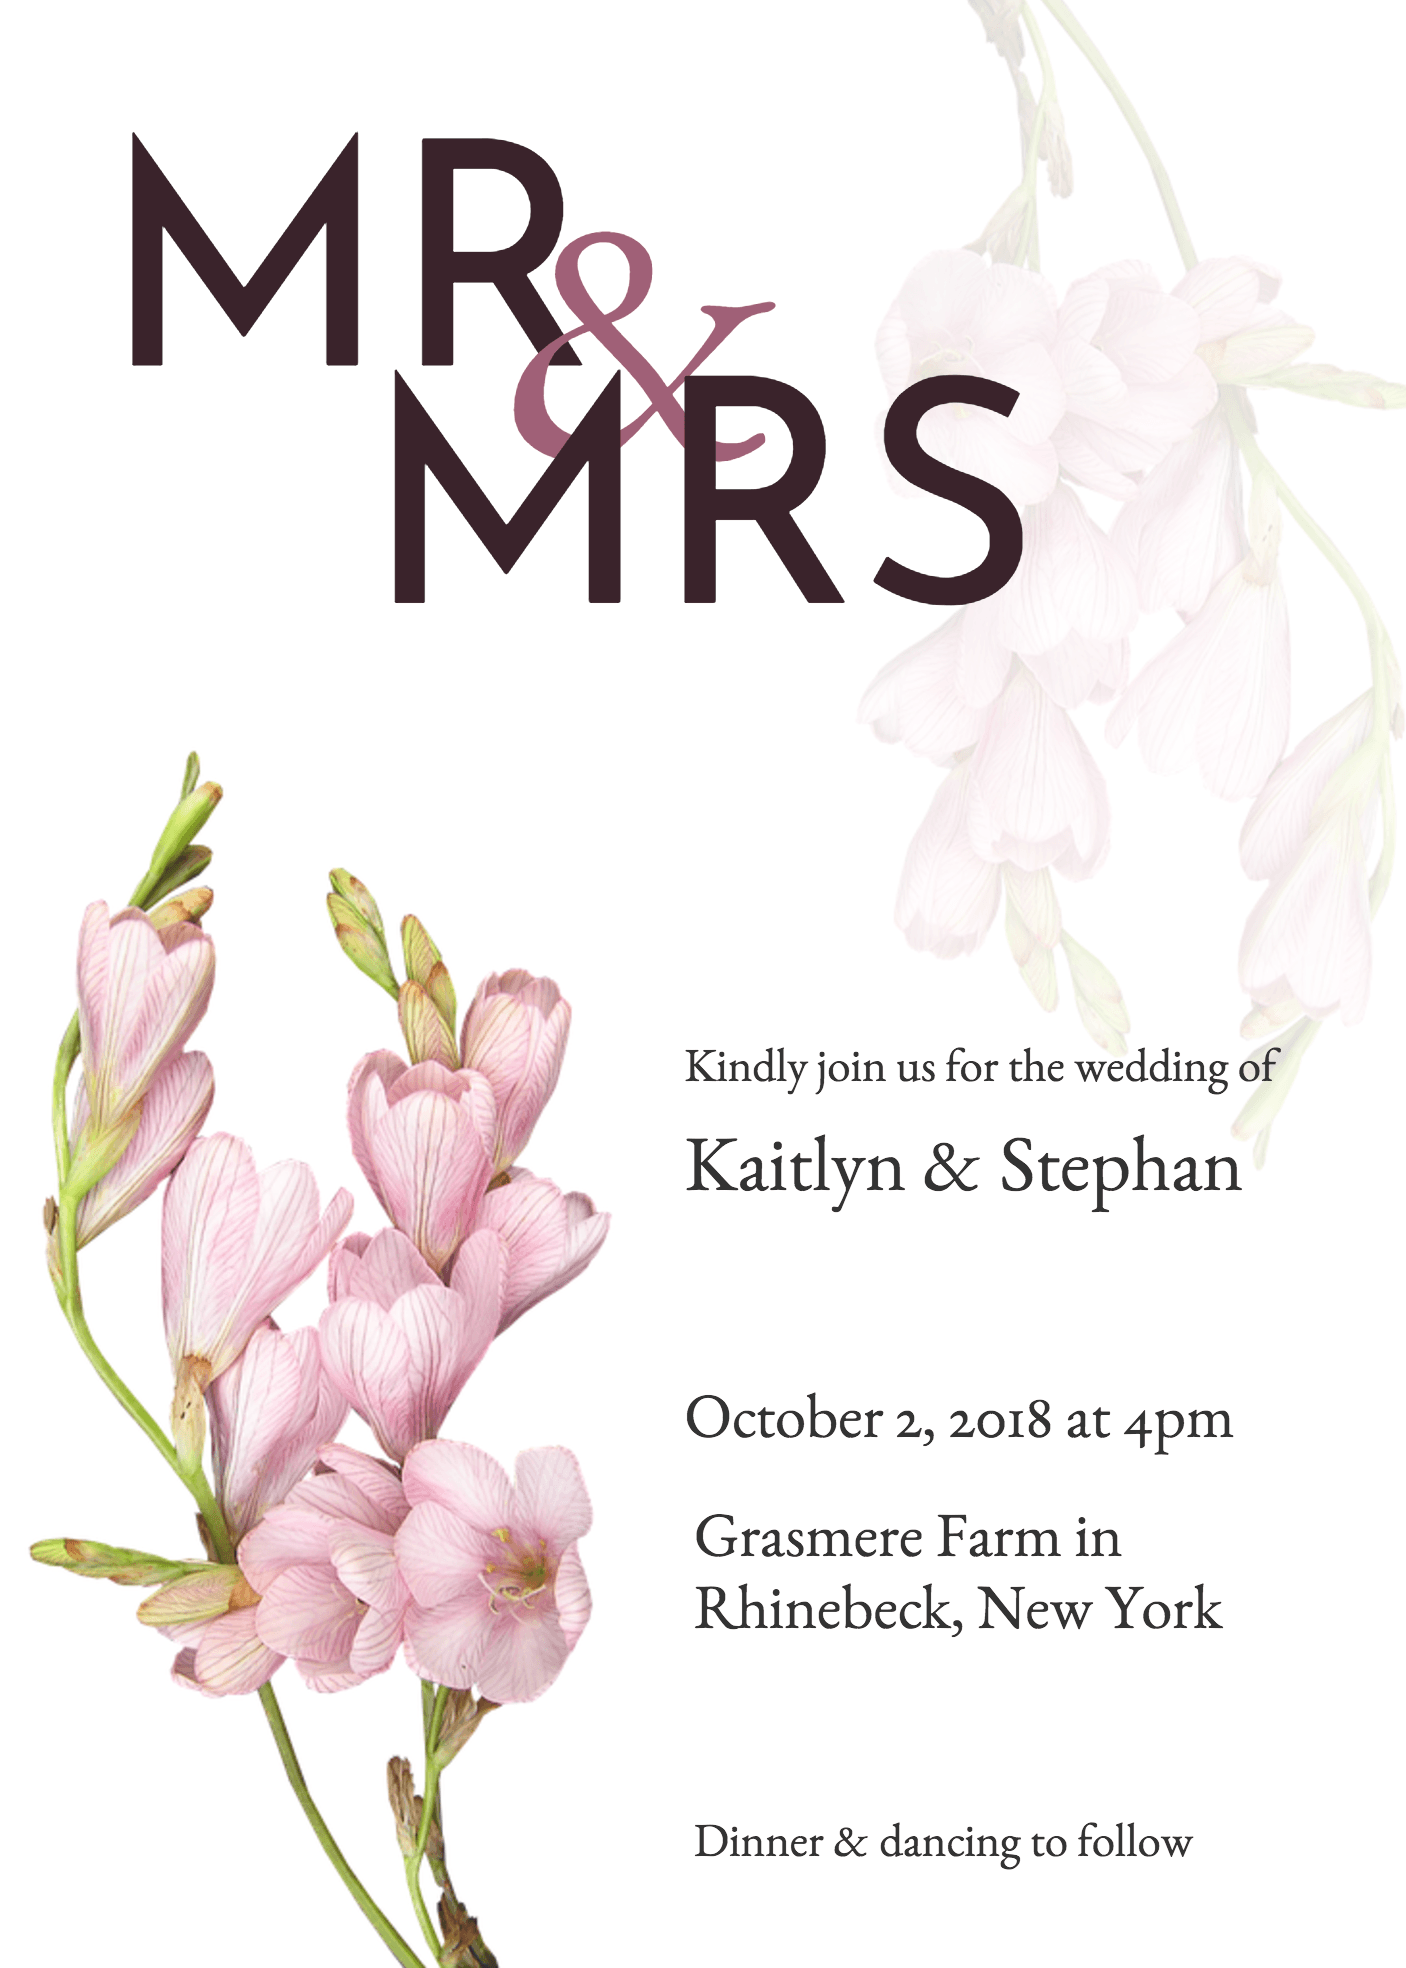 Mr and mrs wedding invitation template venngage mr and mrs wedding invitation stopboris Choice Image